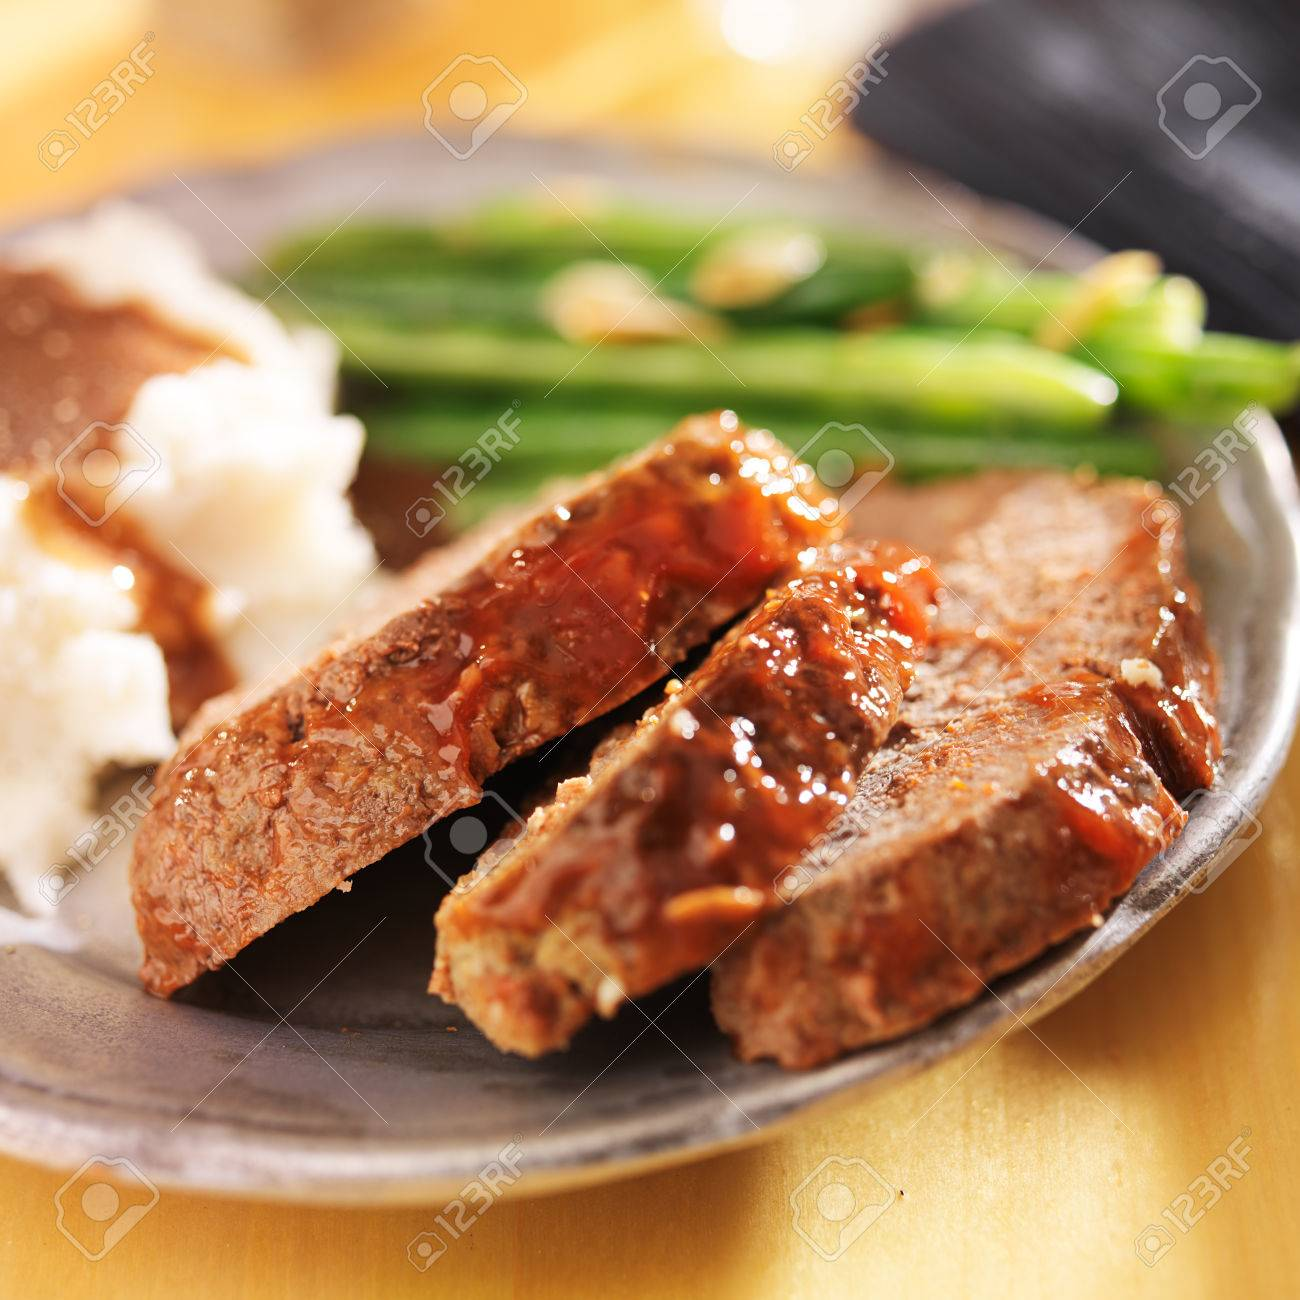 meatloaf with greenbeans and mashed potatoes Stock Photo - 25856670